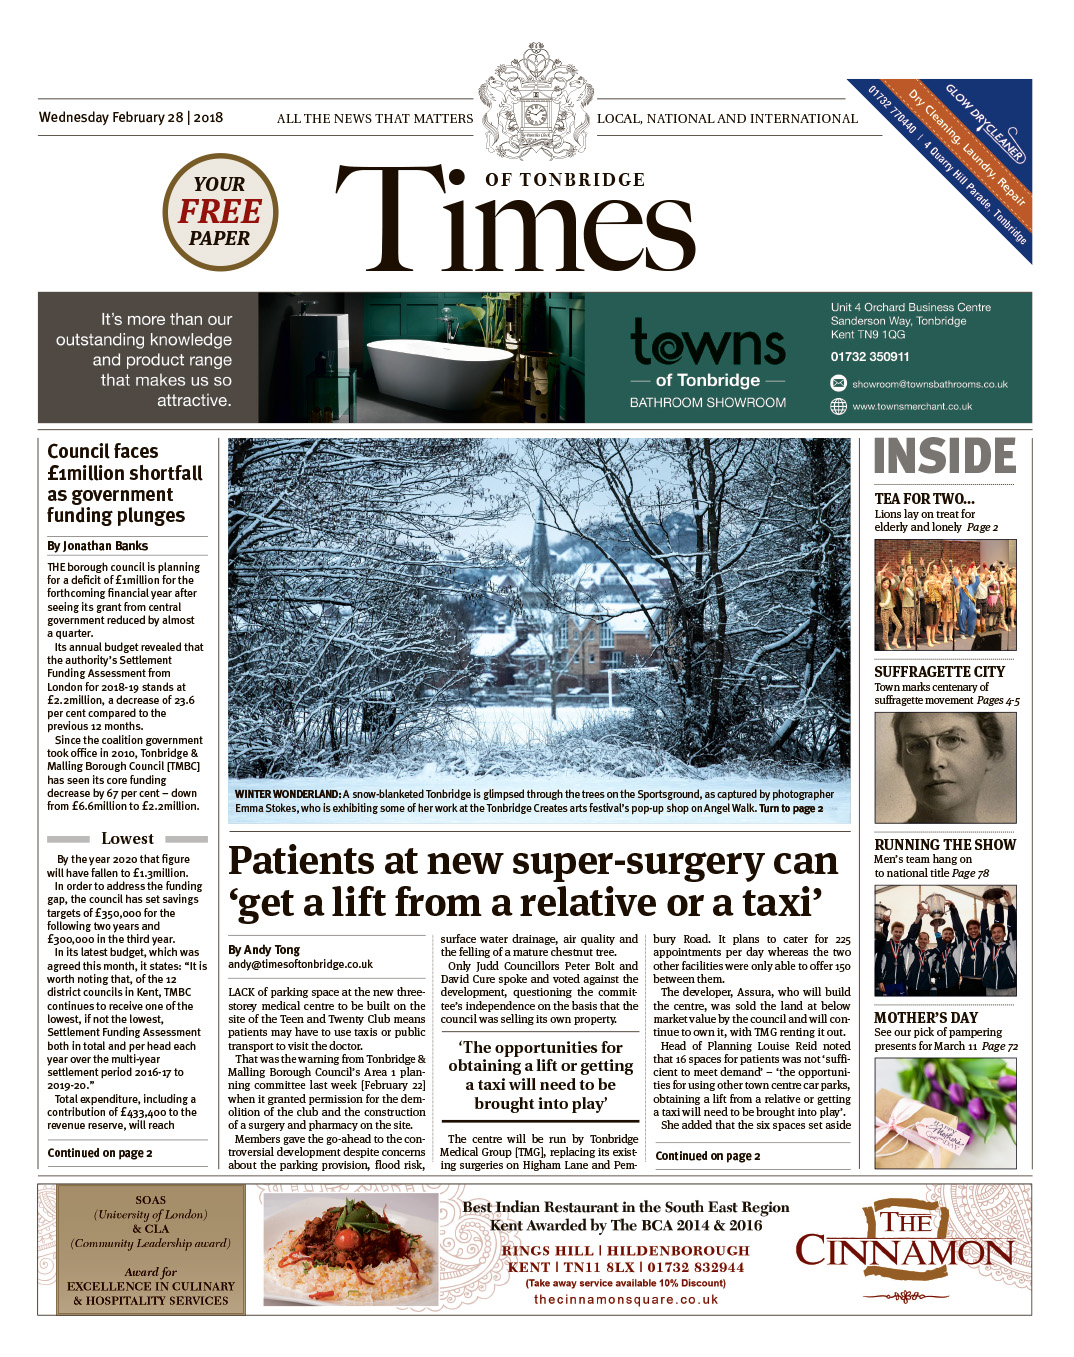 Read the Times of Tonbridge 28th February 2018